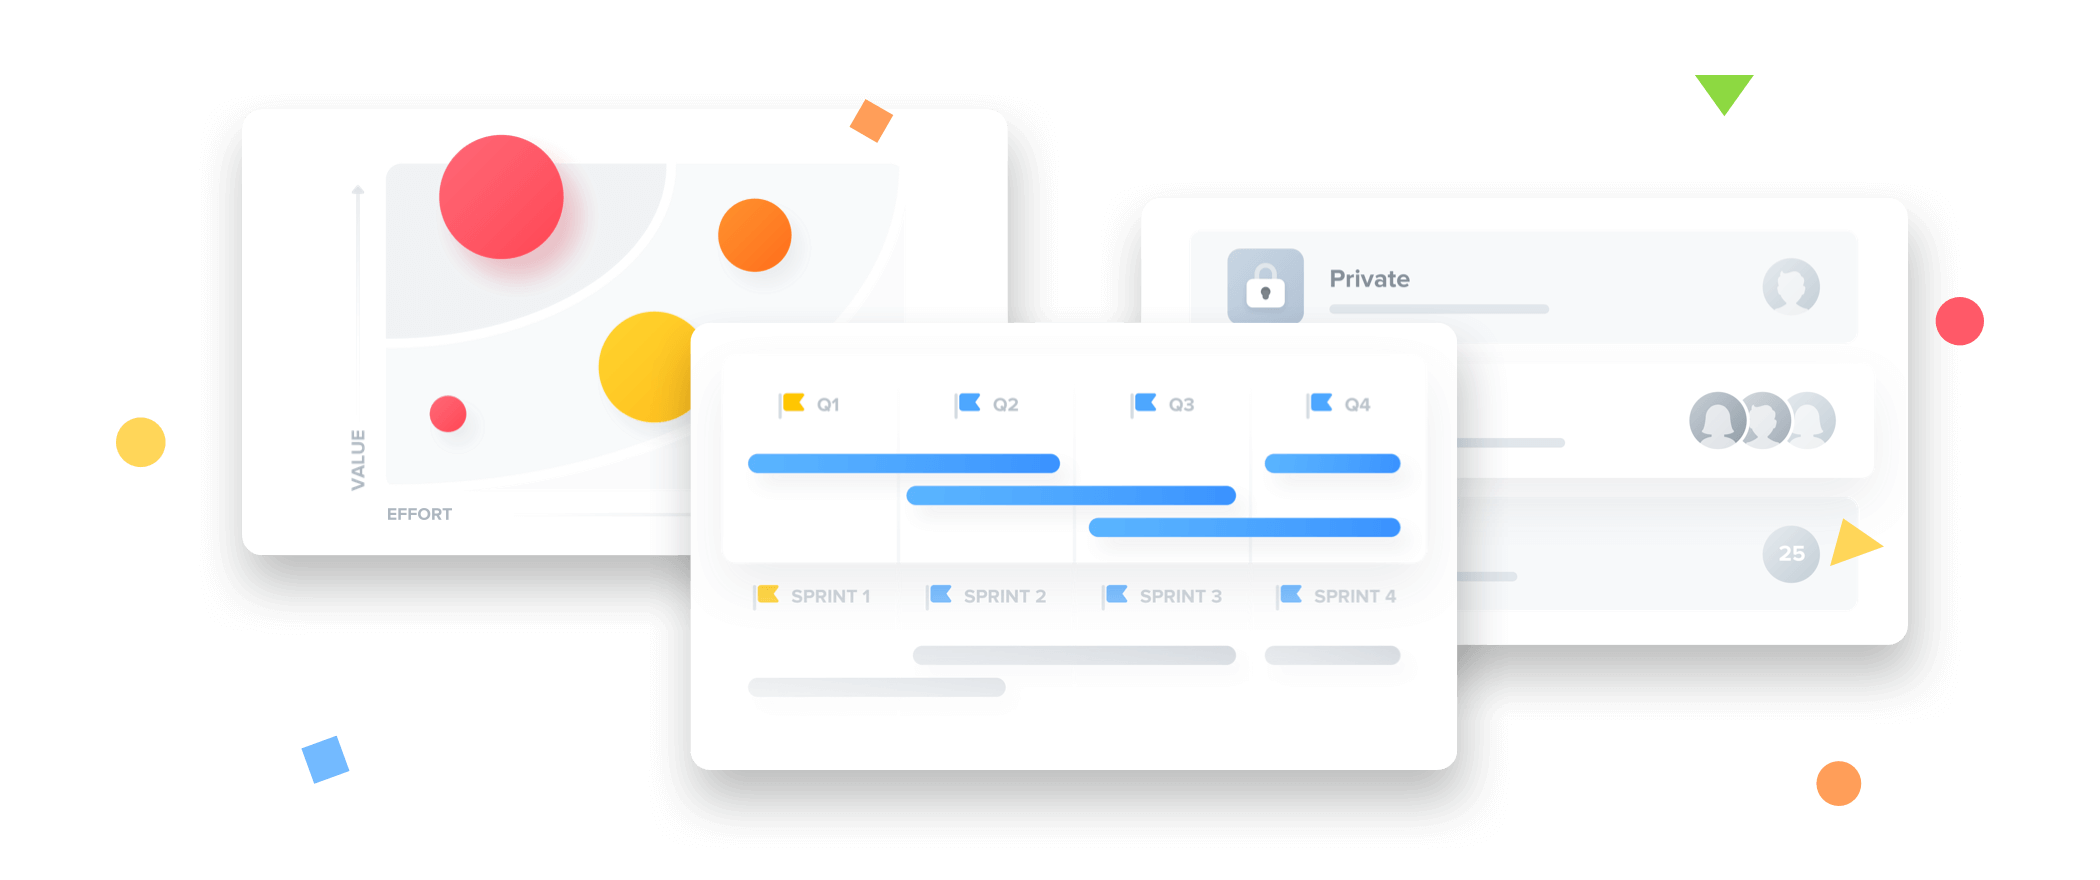 productboard is now even better for large & scaling organizations